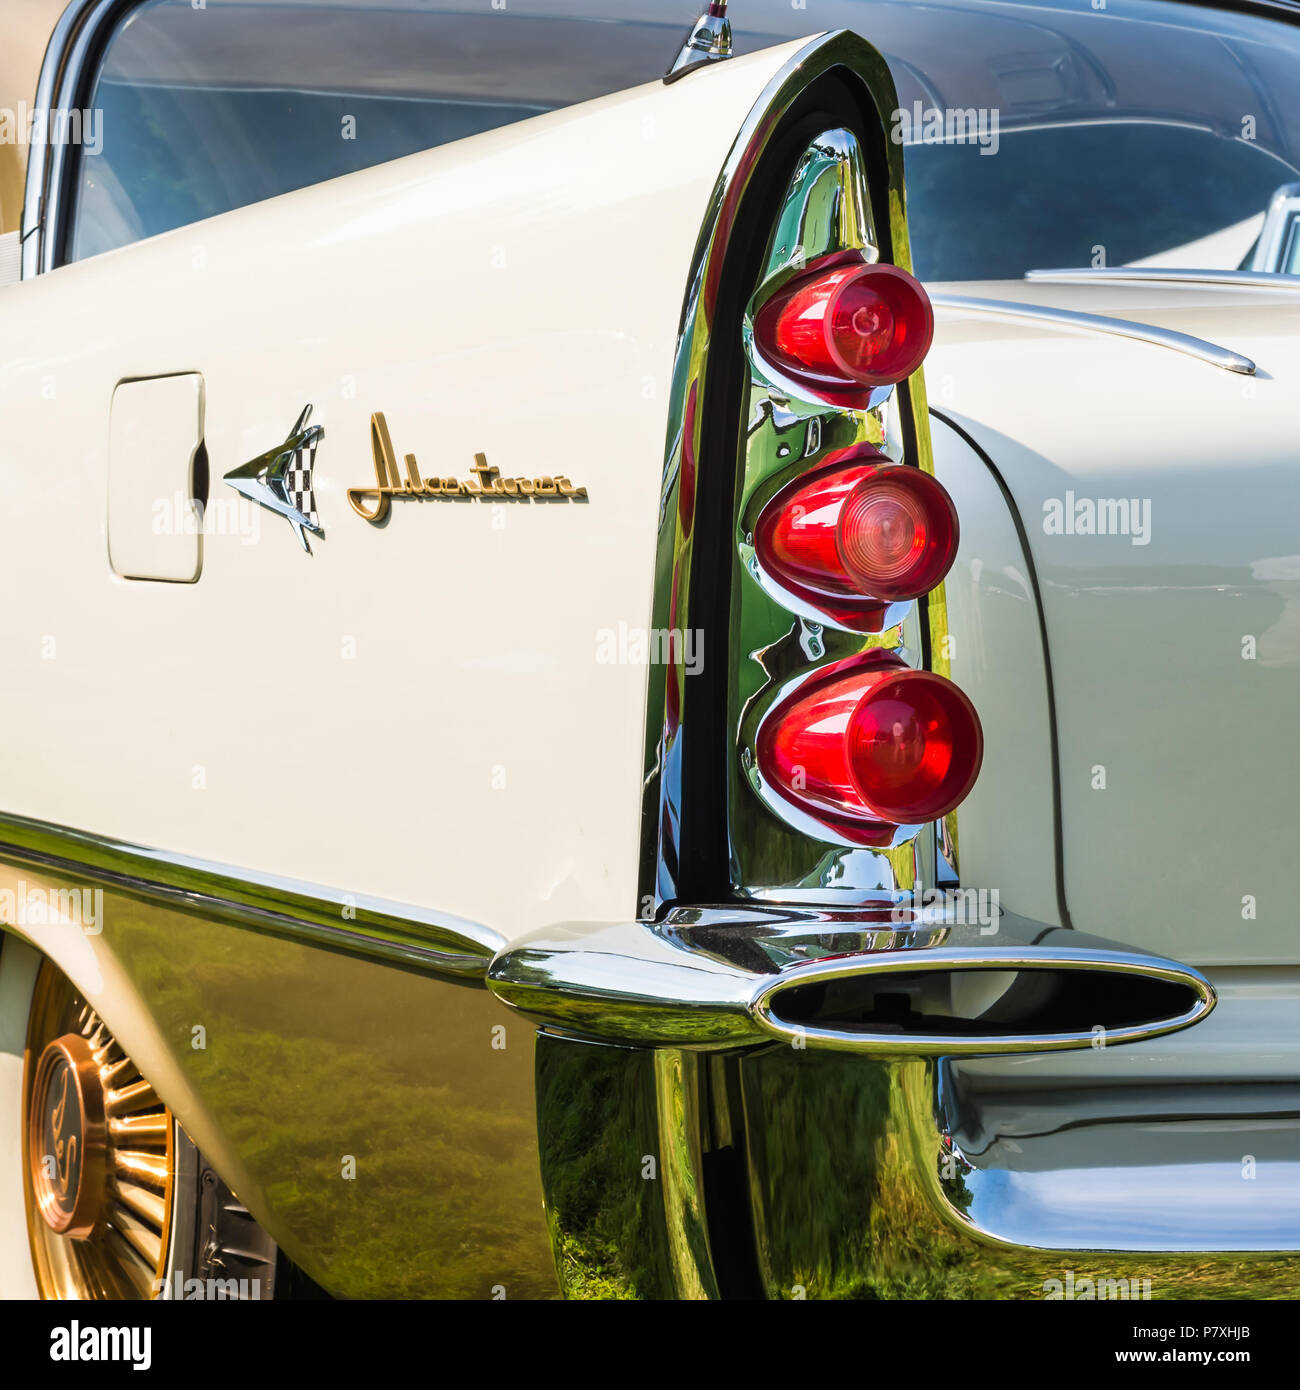 GROSSE POINTE SHORES, MI/USA - JUNE 17, 2018: Closeup of a 1957 DeSoto Adventurer taillight and fin at the EyesOn Design show, near Detroit, Michigan. - Stock Image